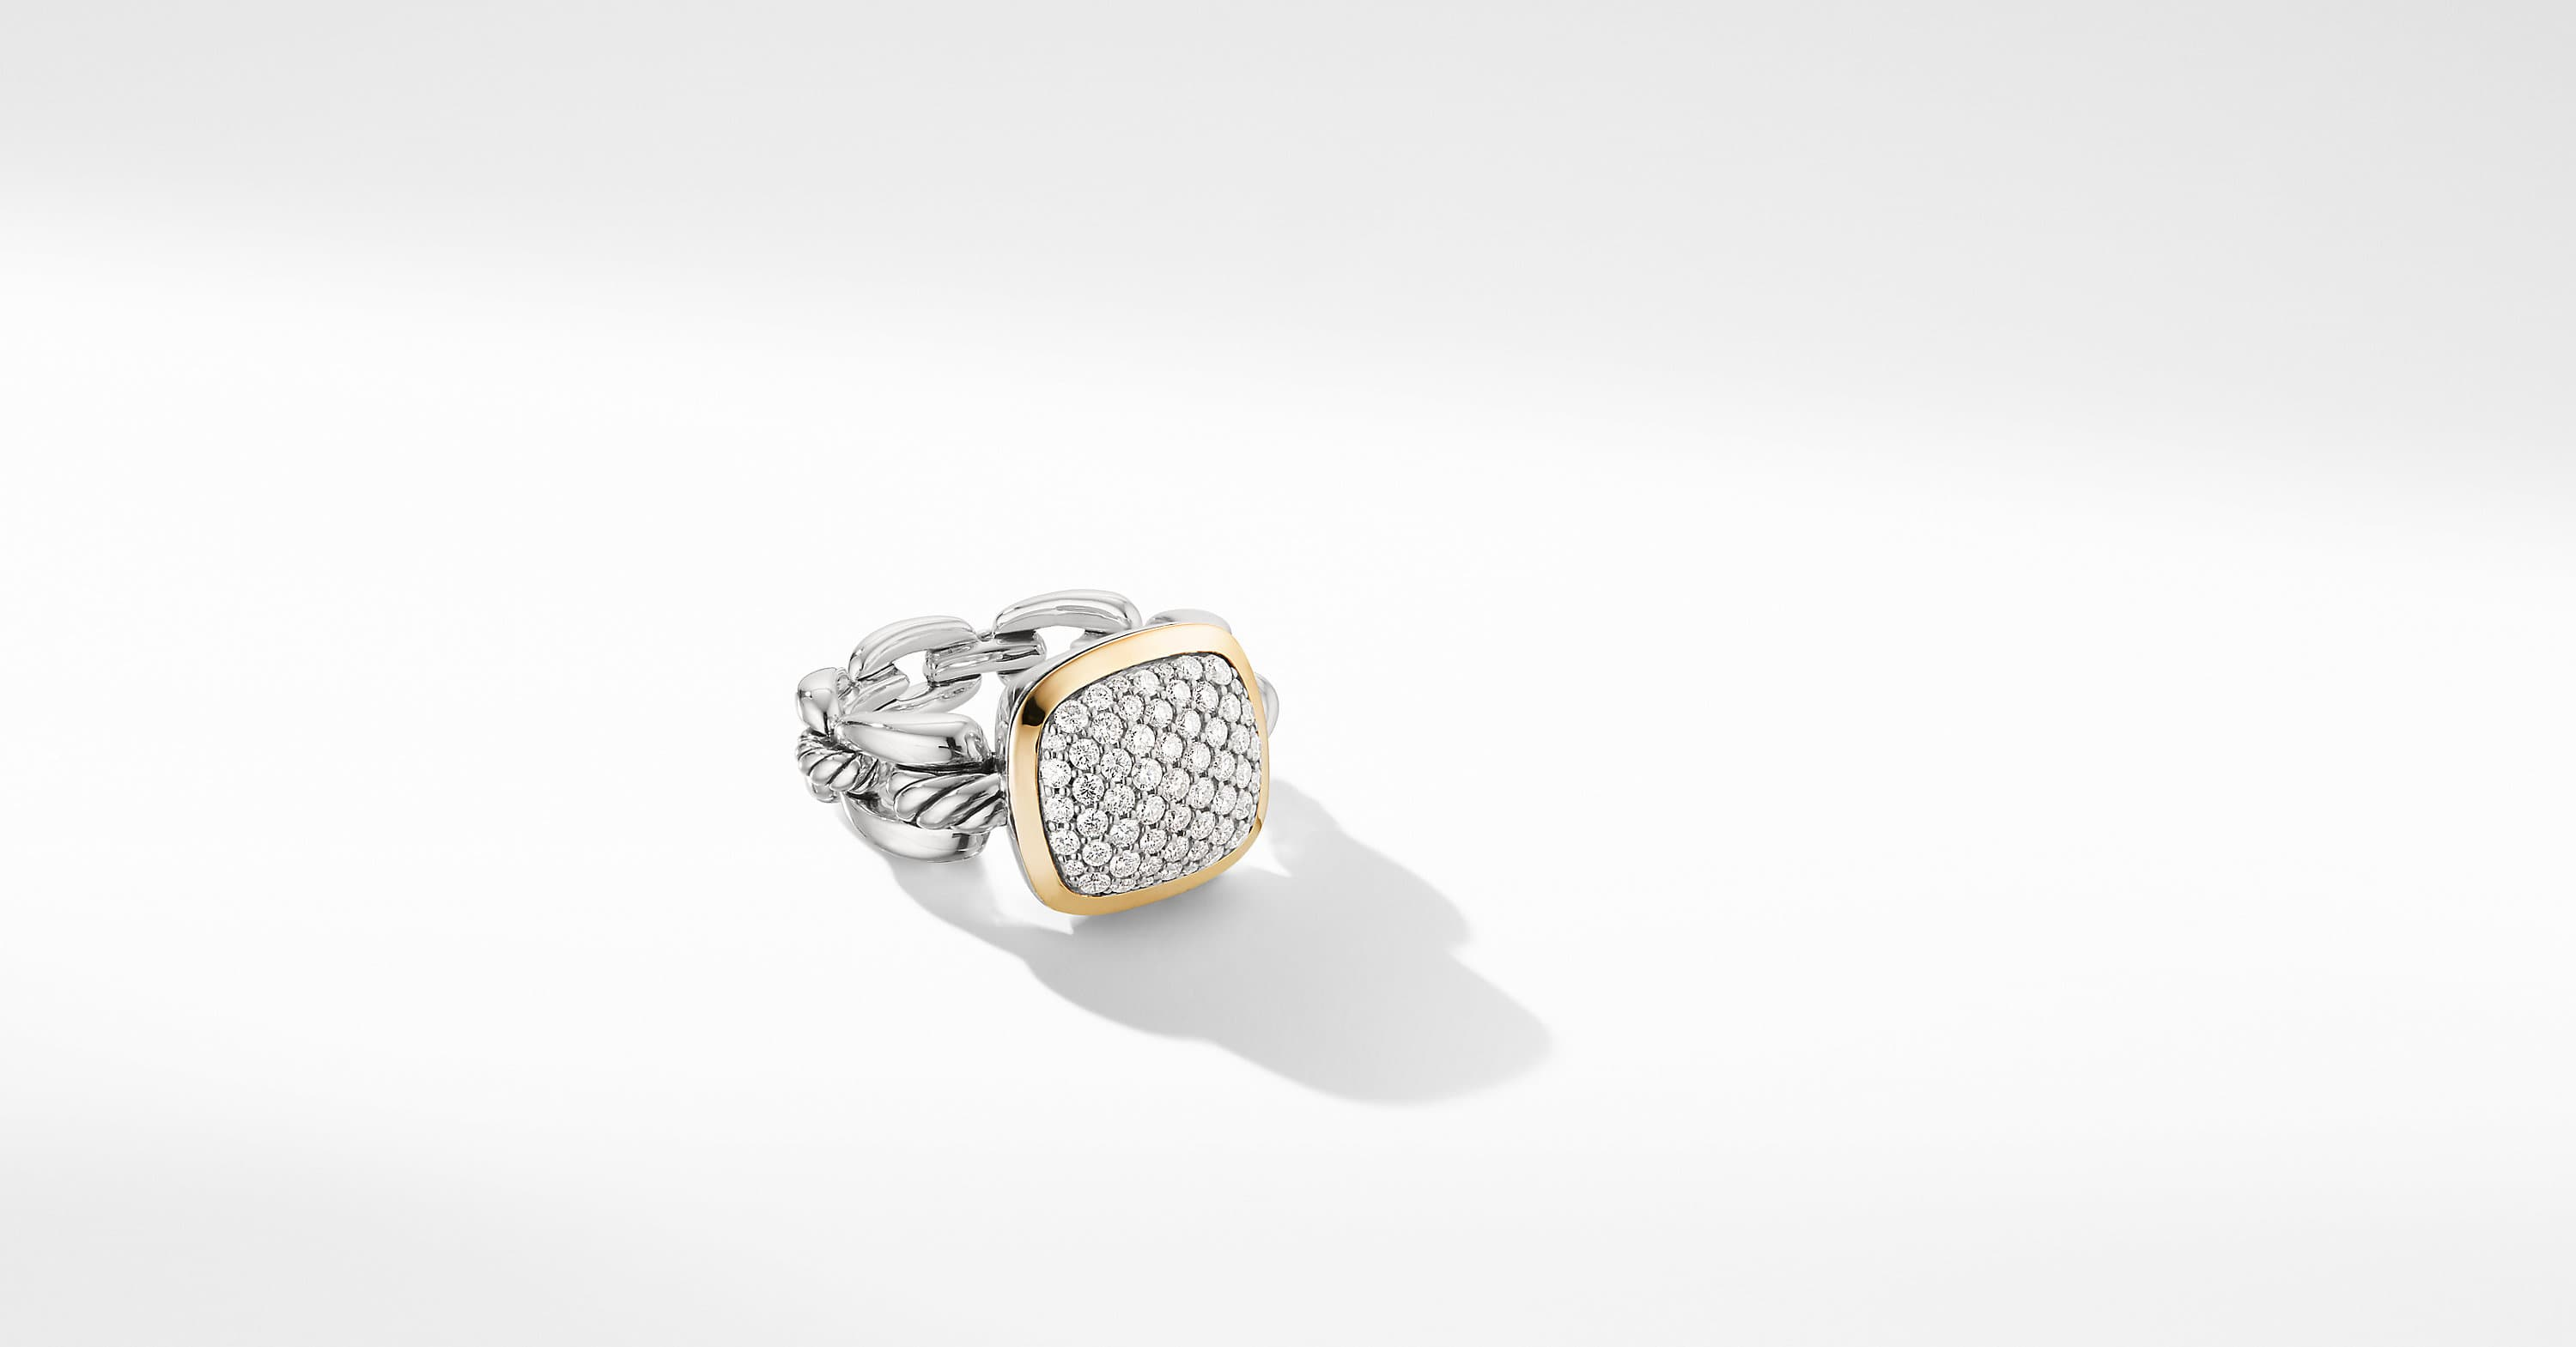 Wellesley Link Statement Ring with 18K Gold and Diamonds